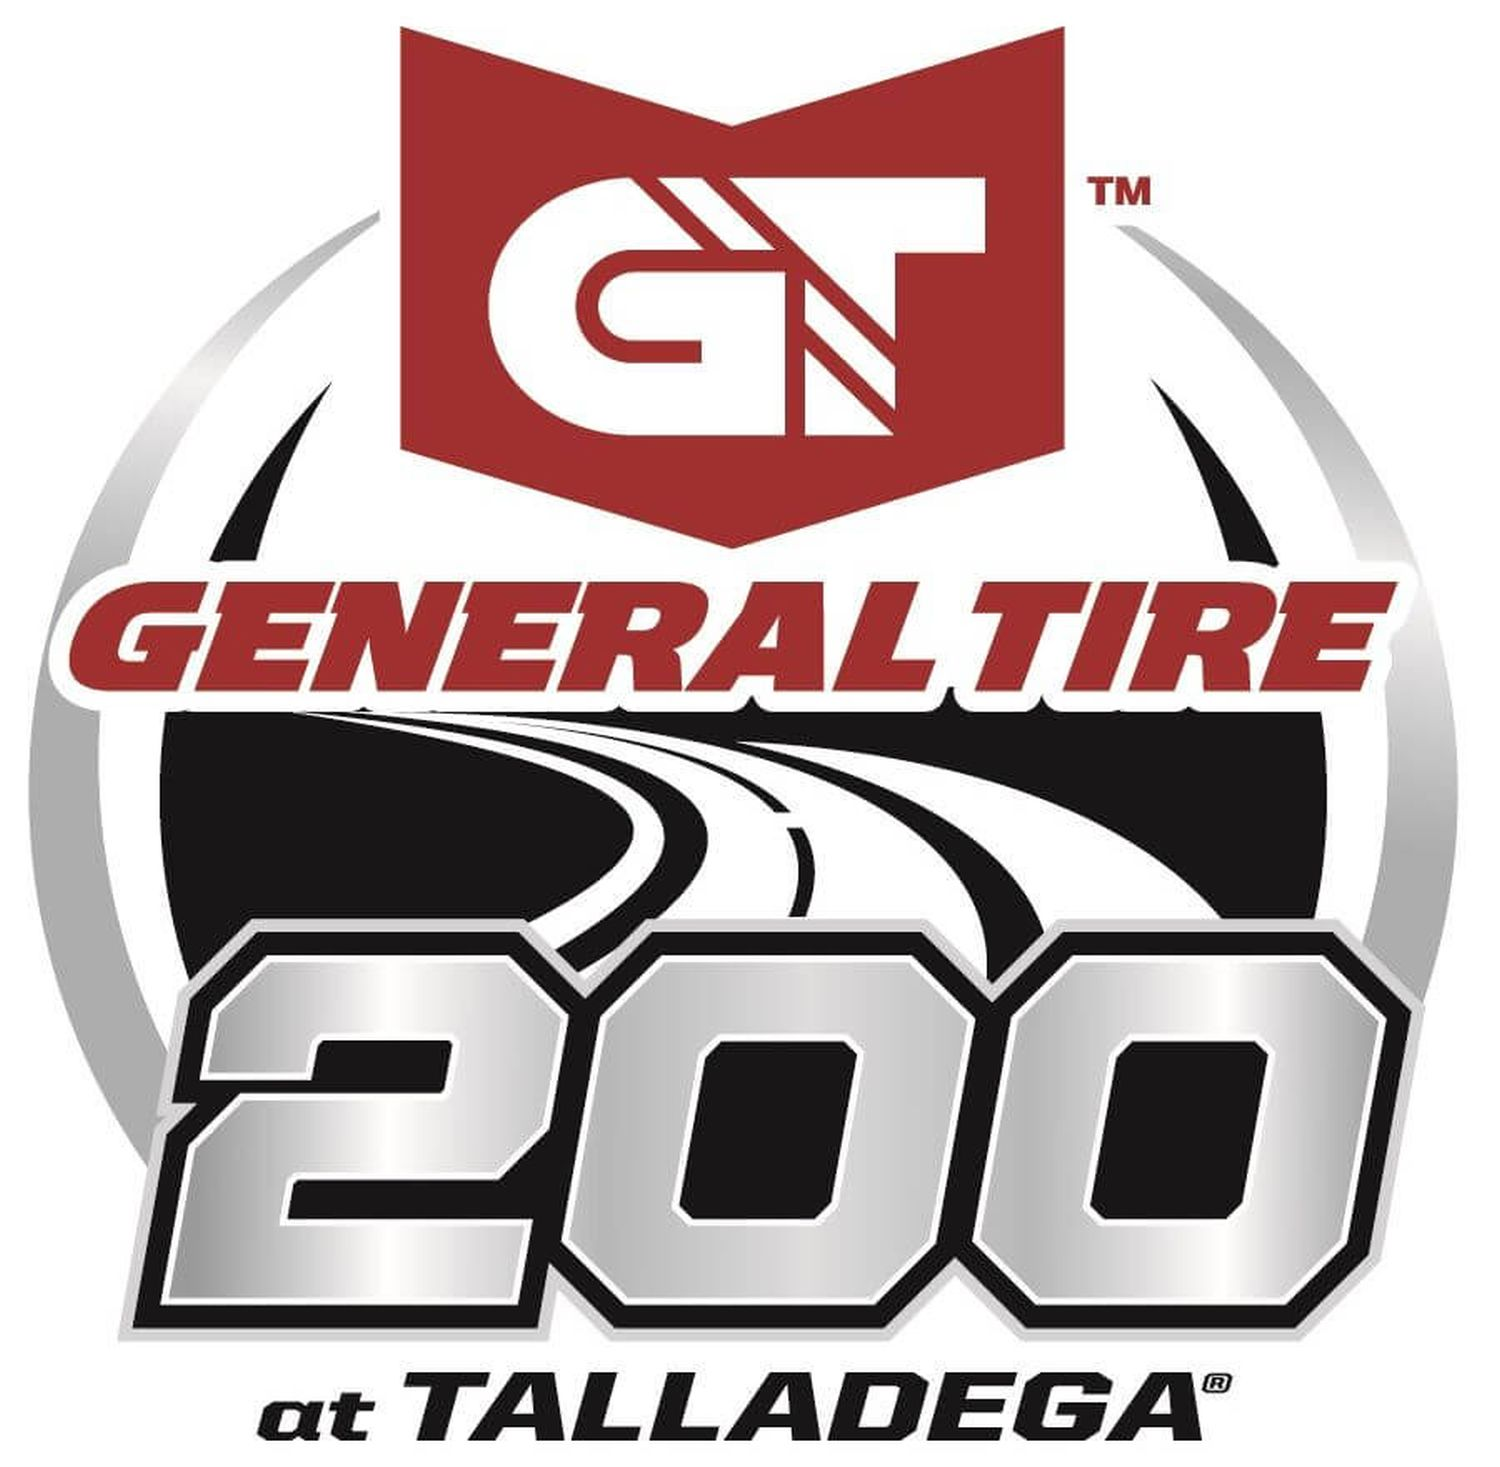 arca qualifying canceled at talladega general tire 200 field set by rh catchfence com general tire logo image